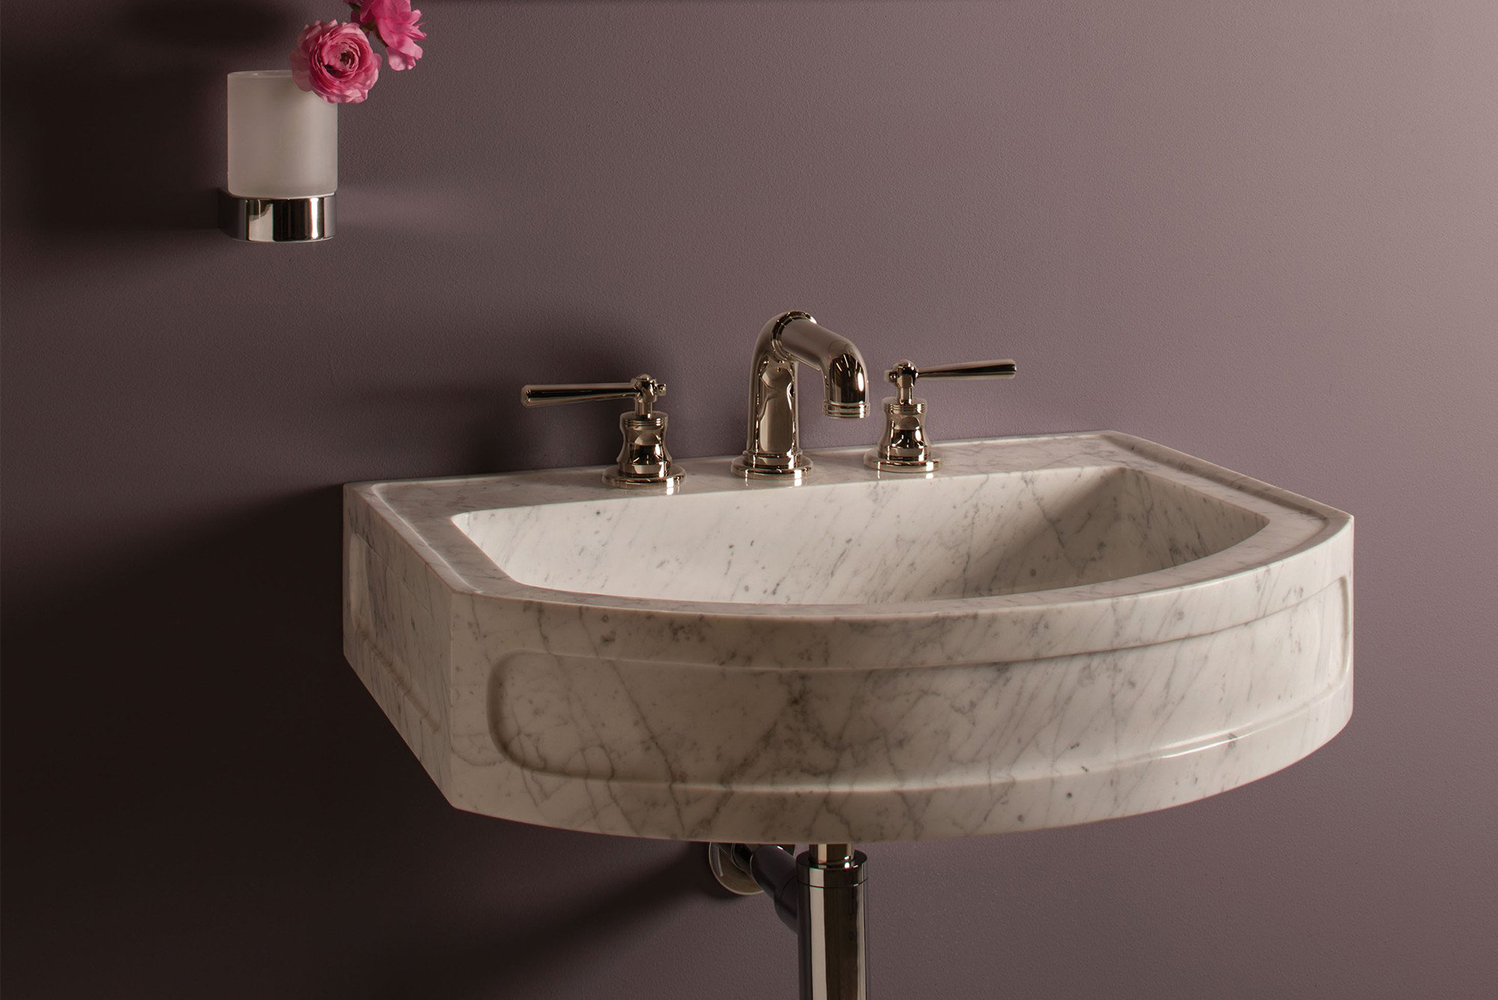 The Harbor washbasin is also available as a wall mount version with heavy-duty iron brackets for in-wall mounting.